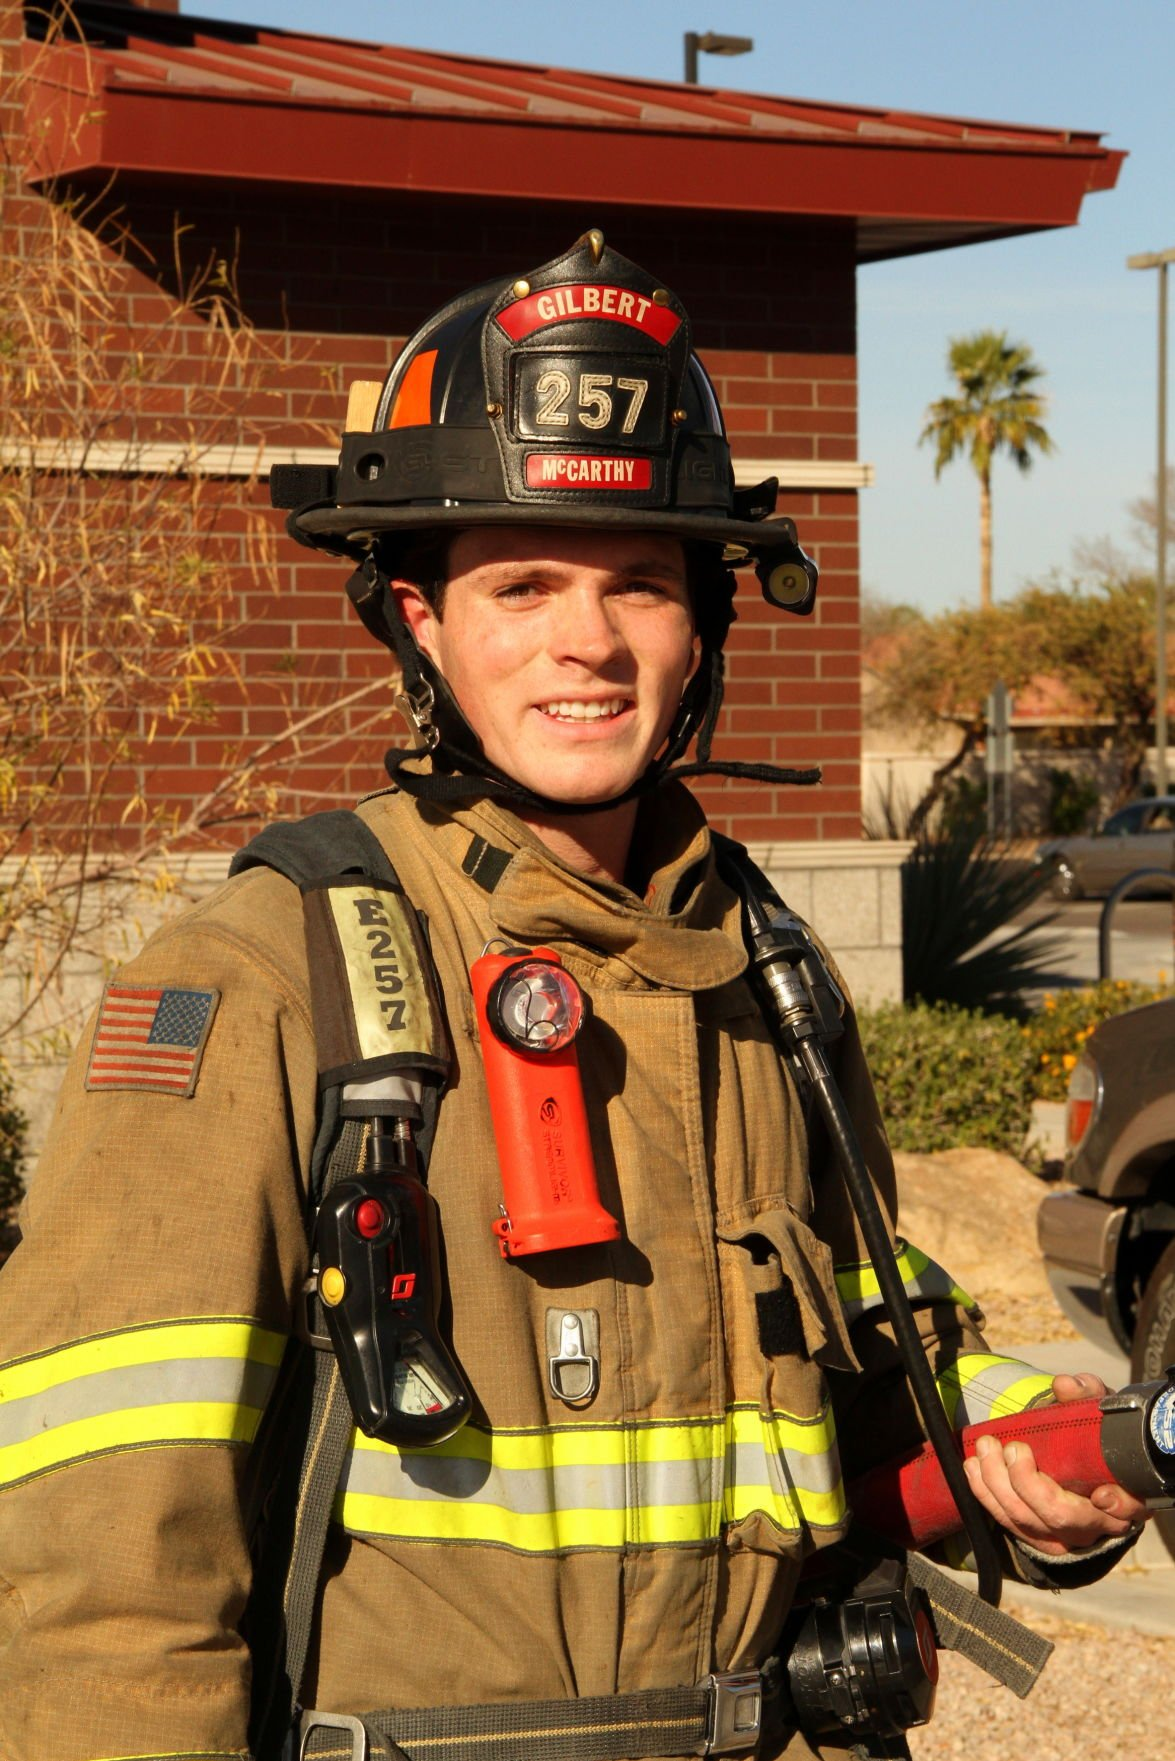 Desert Vista grad Cole McCarthy realized his life's dream of becoming a firefighter by finding a position in Gilbert.